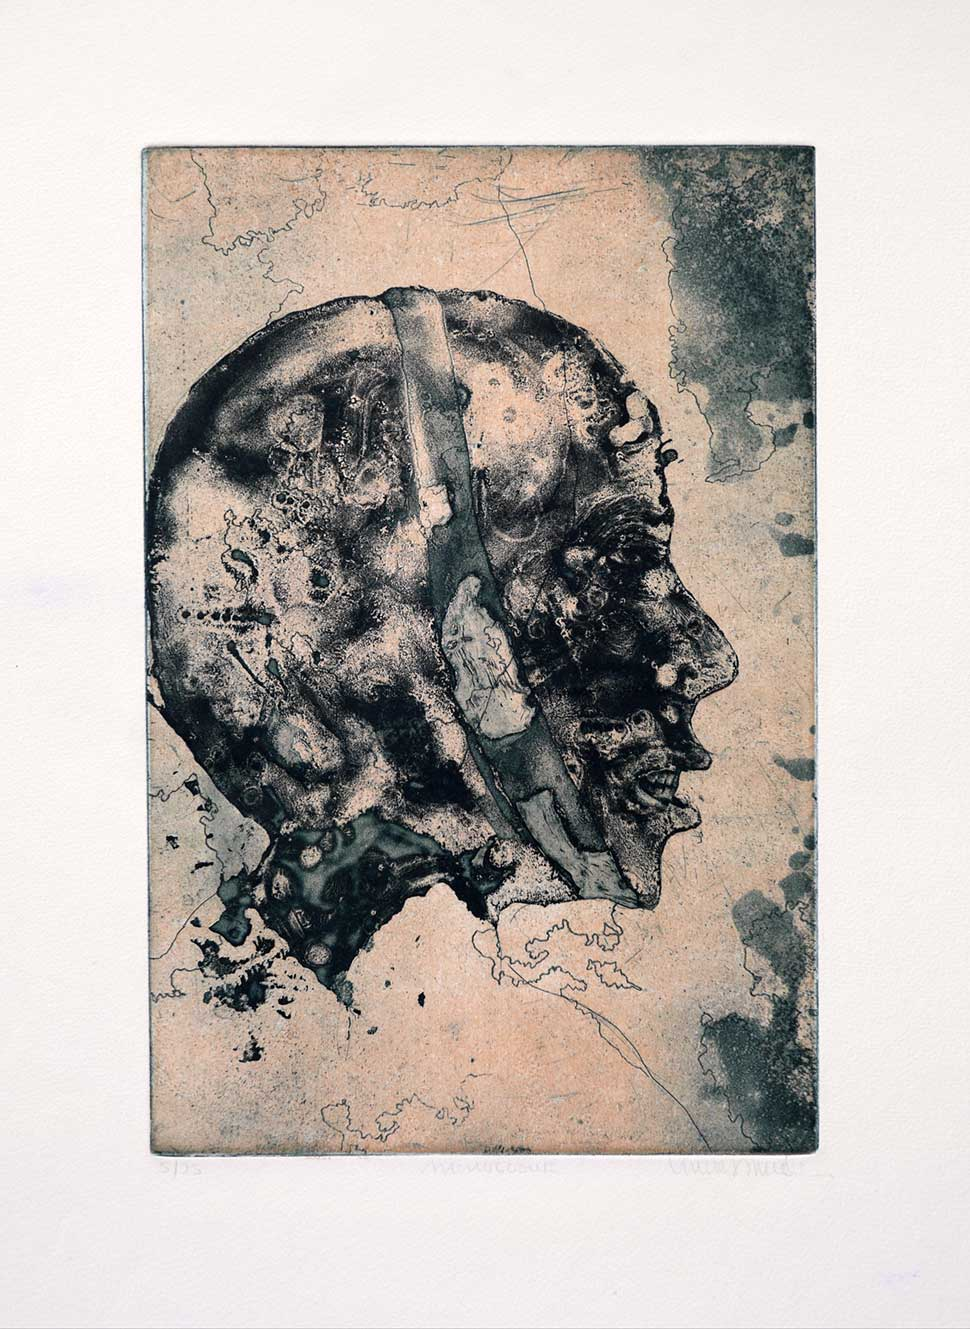 Monologue etching and ink wash by VIncent Sheridan